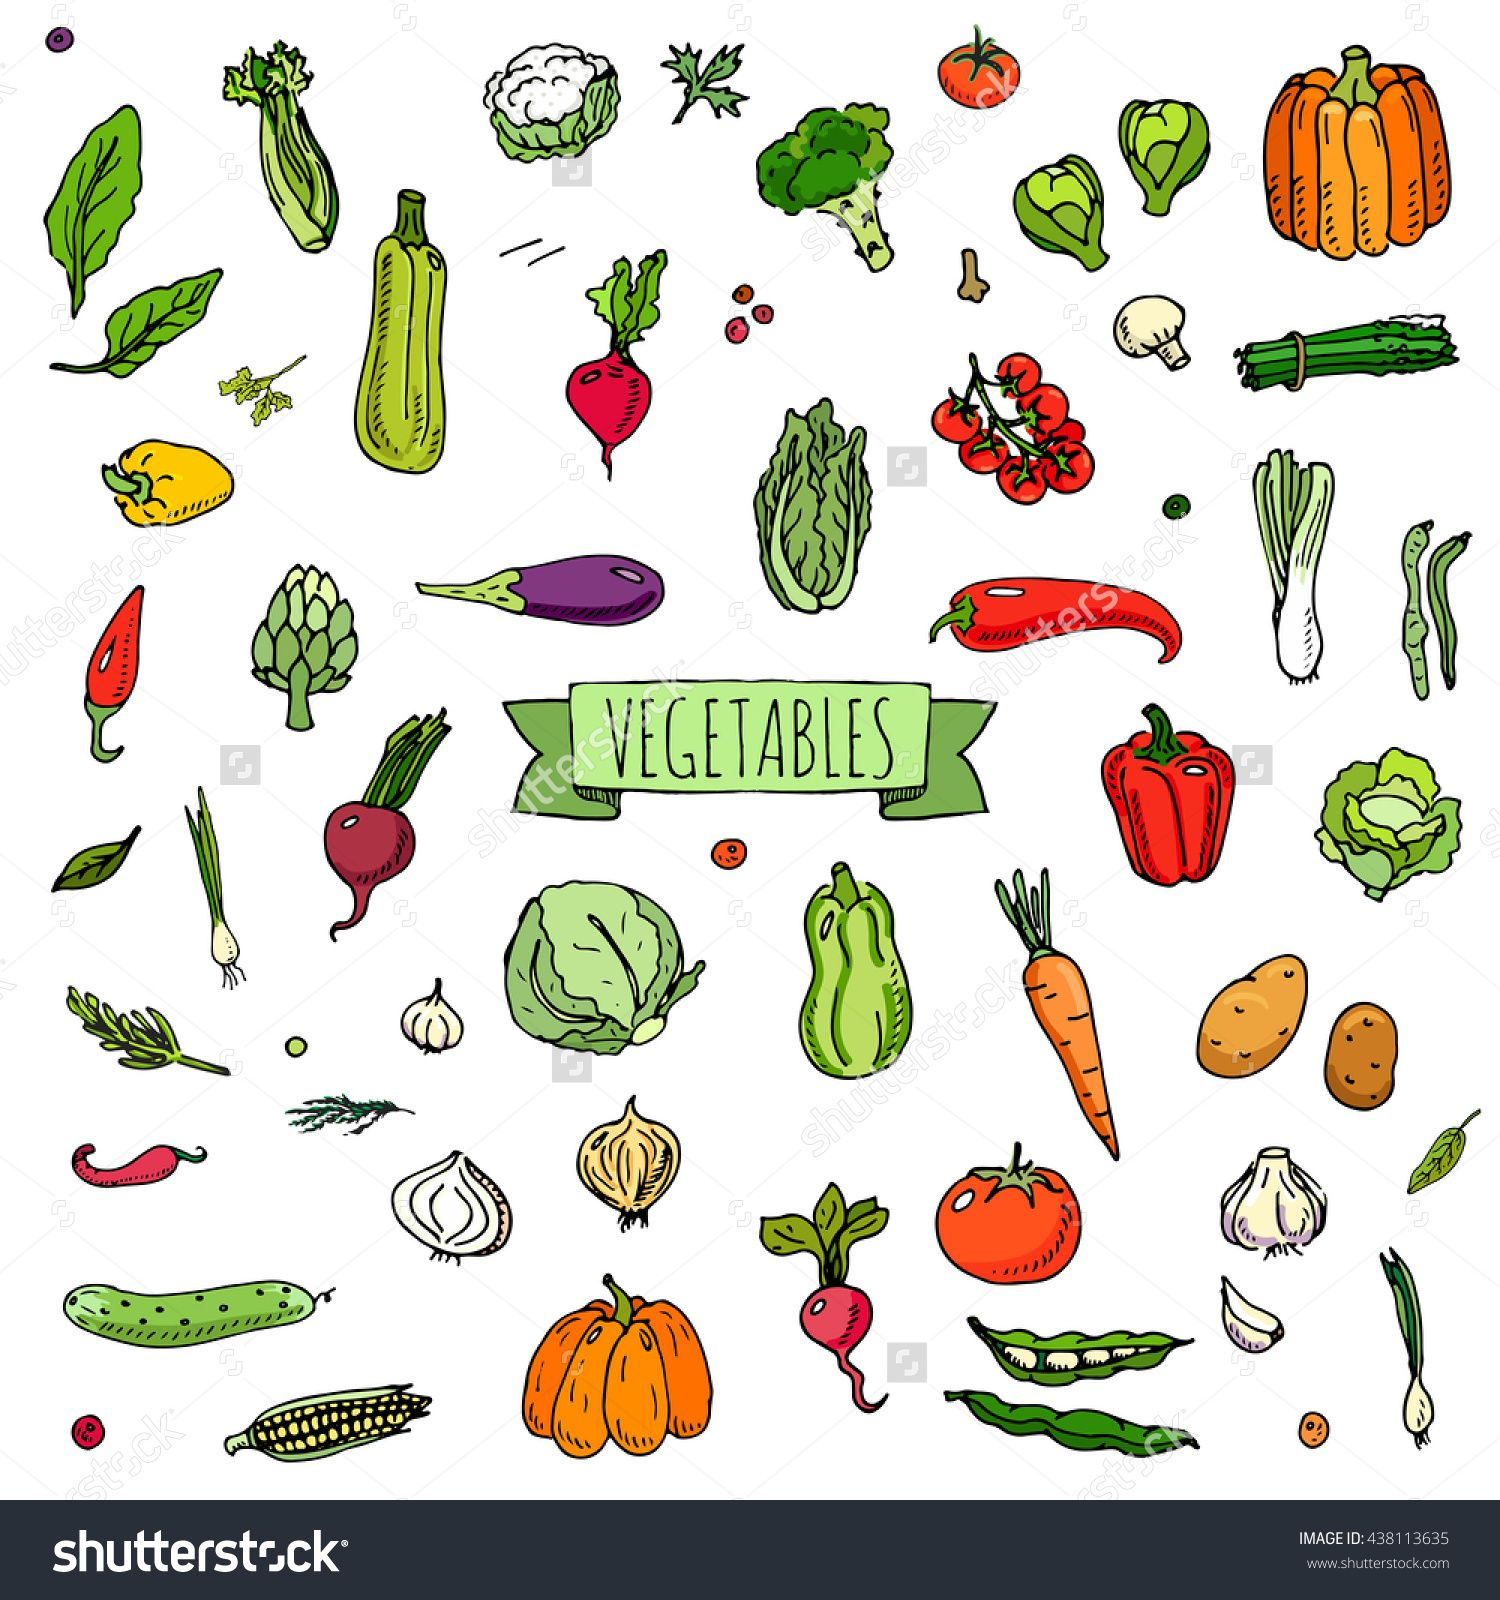 Clipart vegetables seasonal food. Hand drawn doodle icons